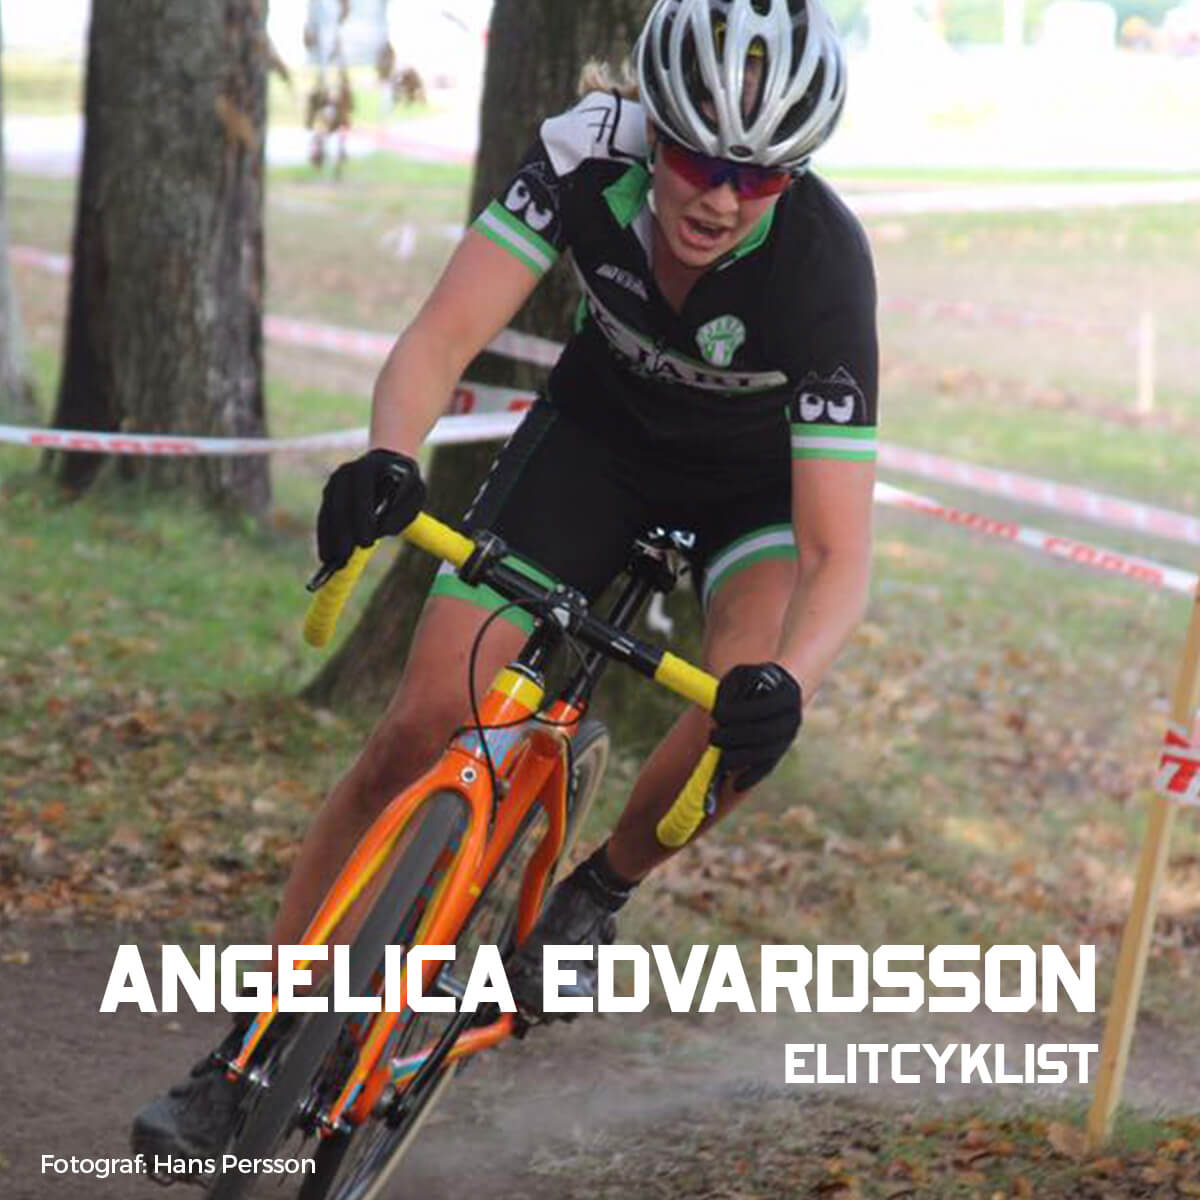 Angelica_Edvardsson1200x1200